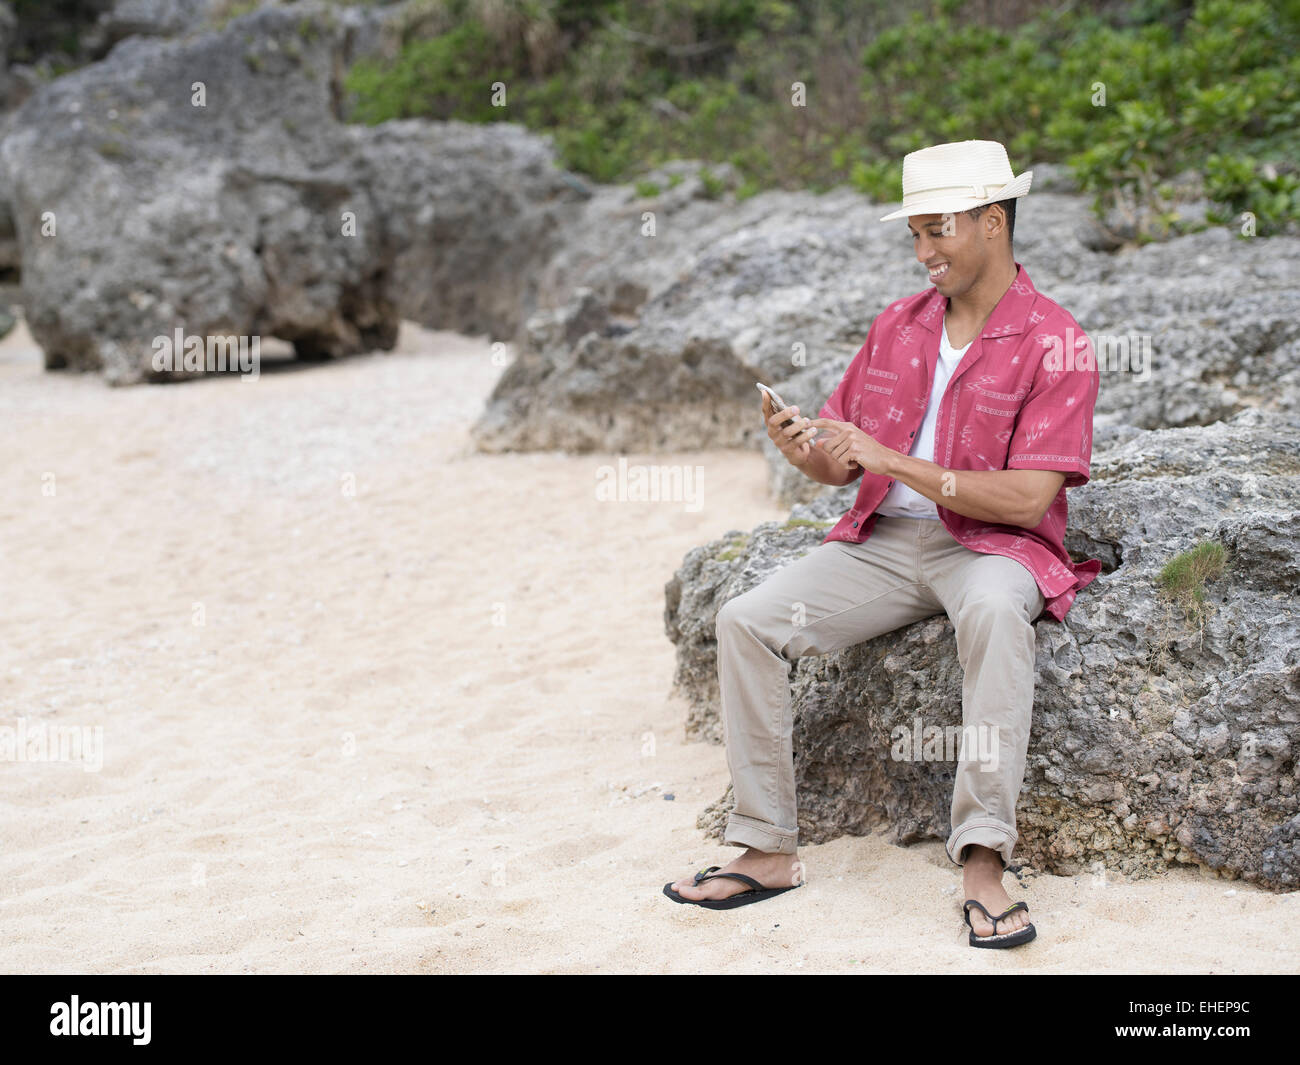 Man texting / contrôle internet sur smartphone Apple iphone 6 alors qu'à la plage Photo Stock